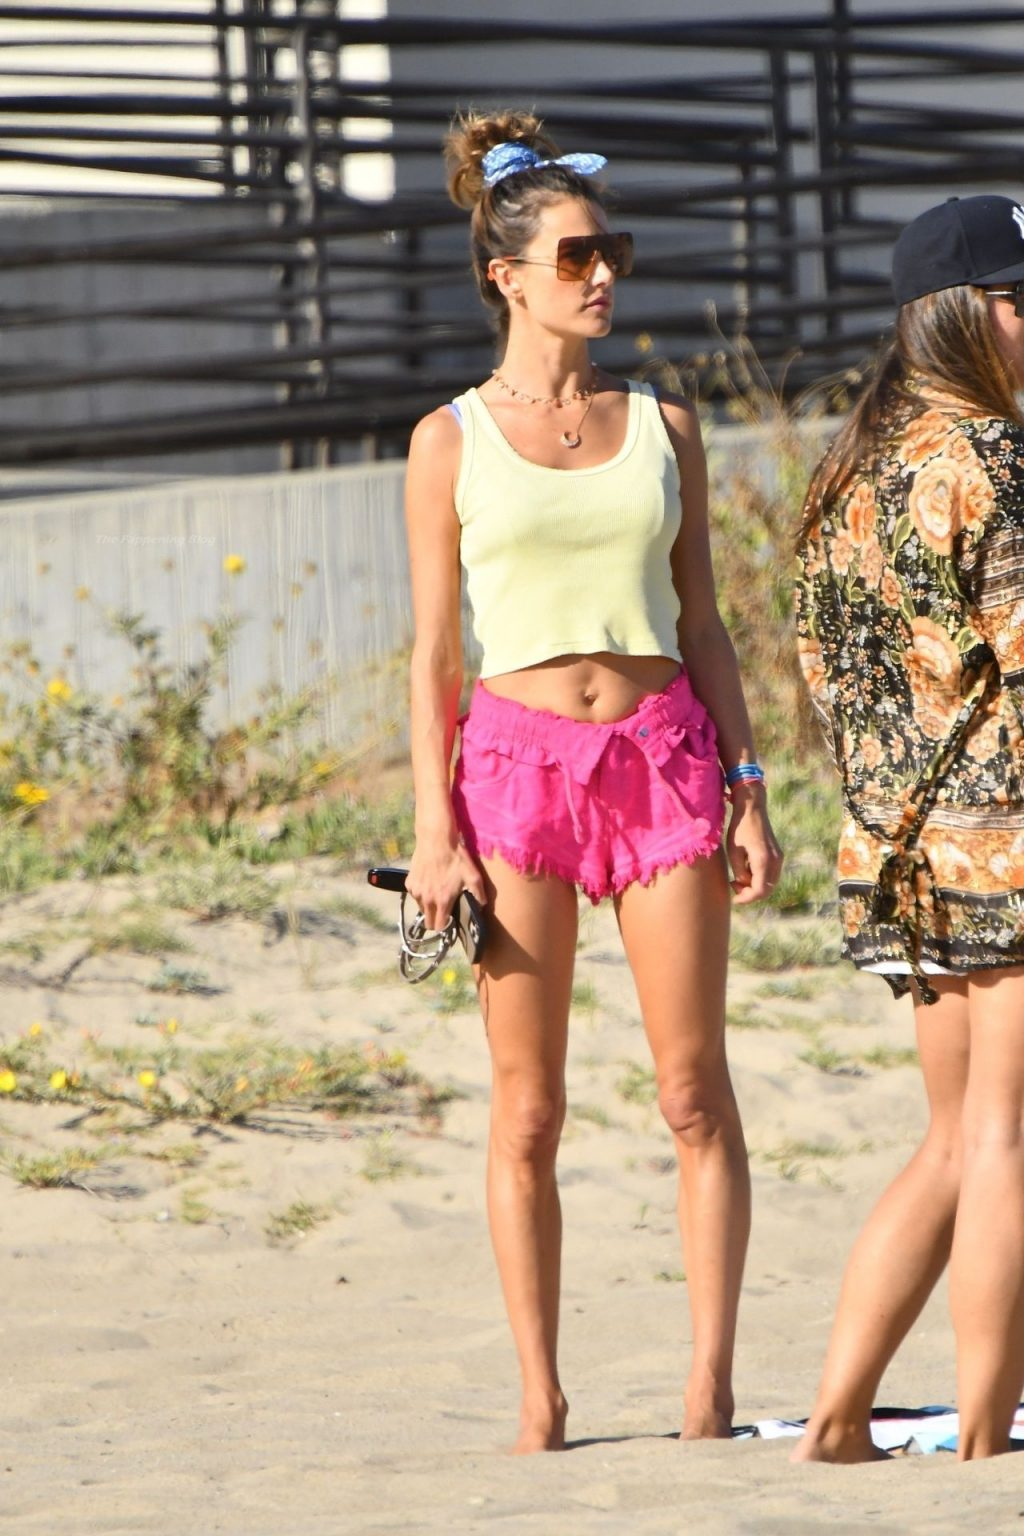 Alessandra Ambrosio Stuns While Playing Beach Volleyball (80 Photos)